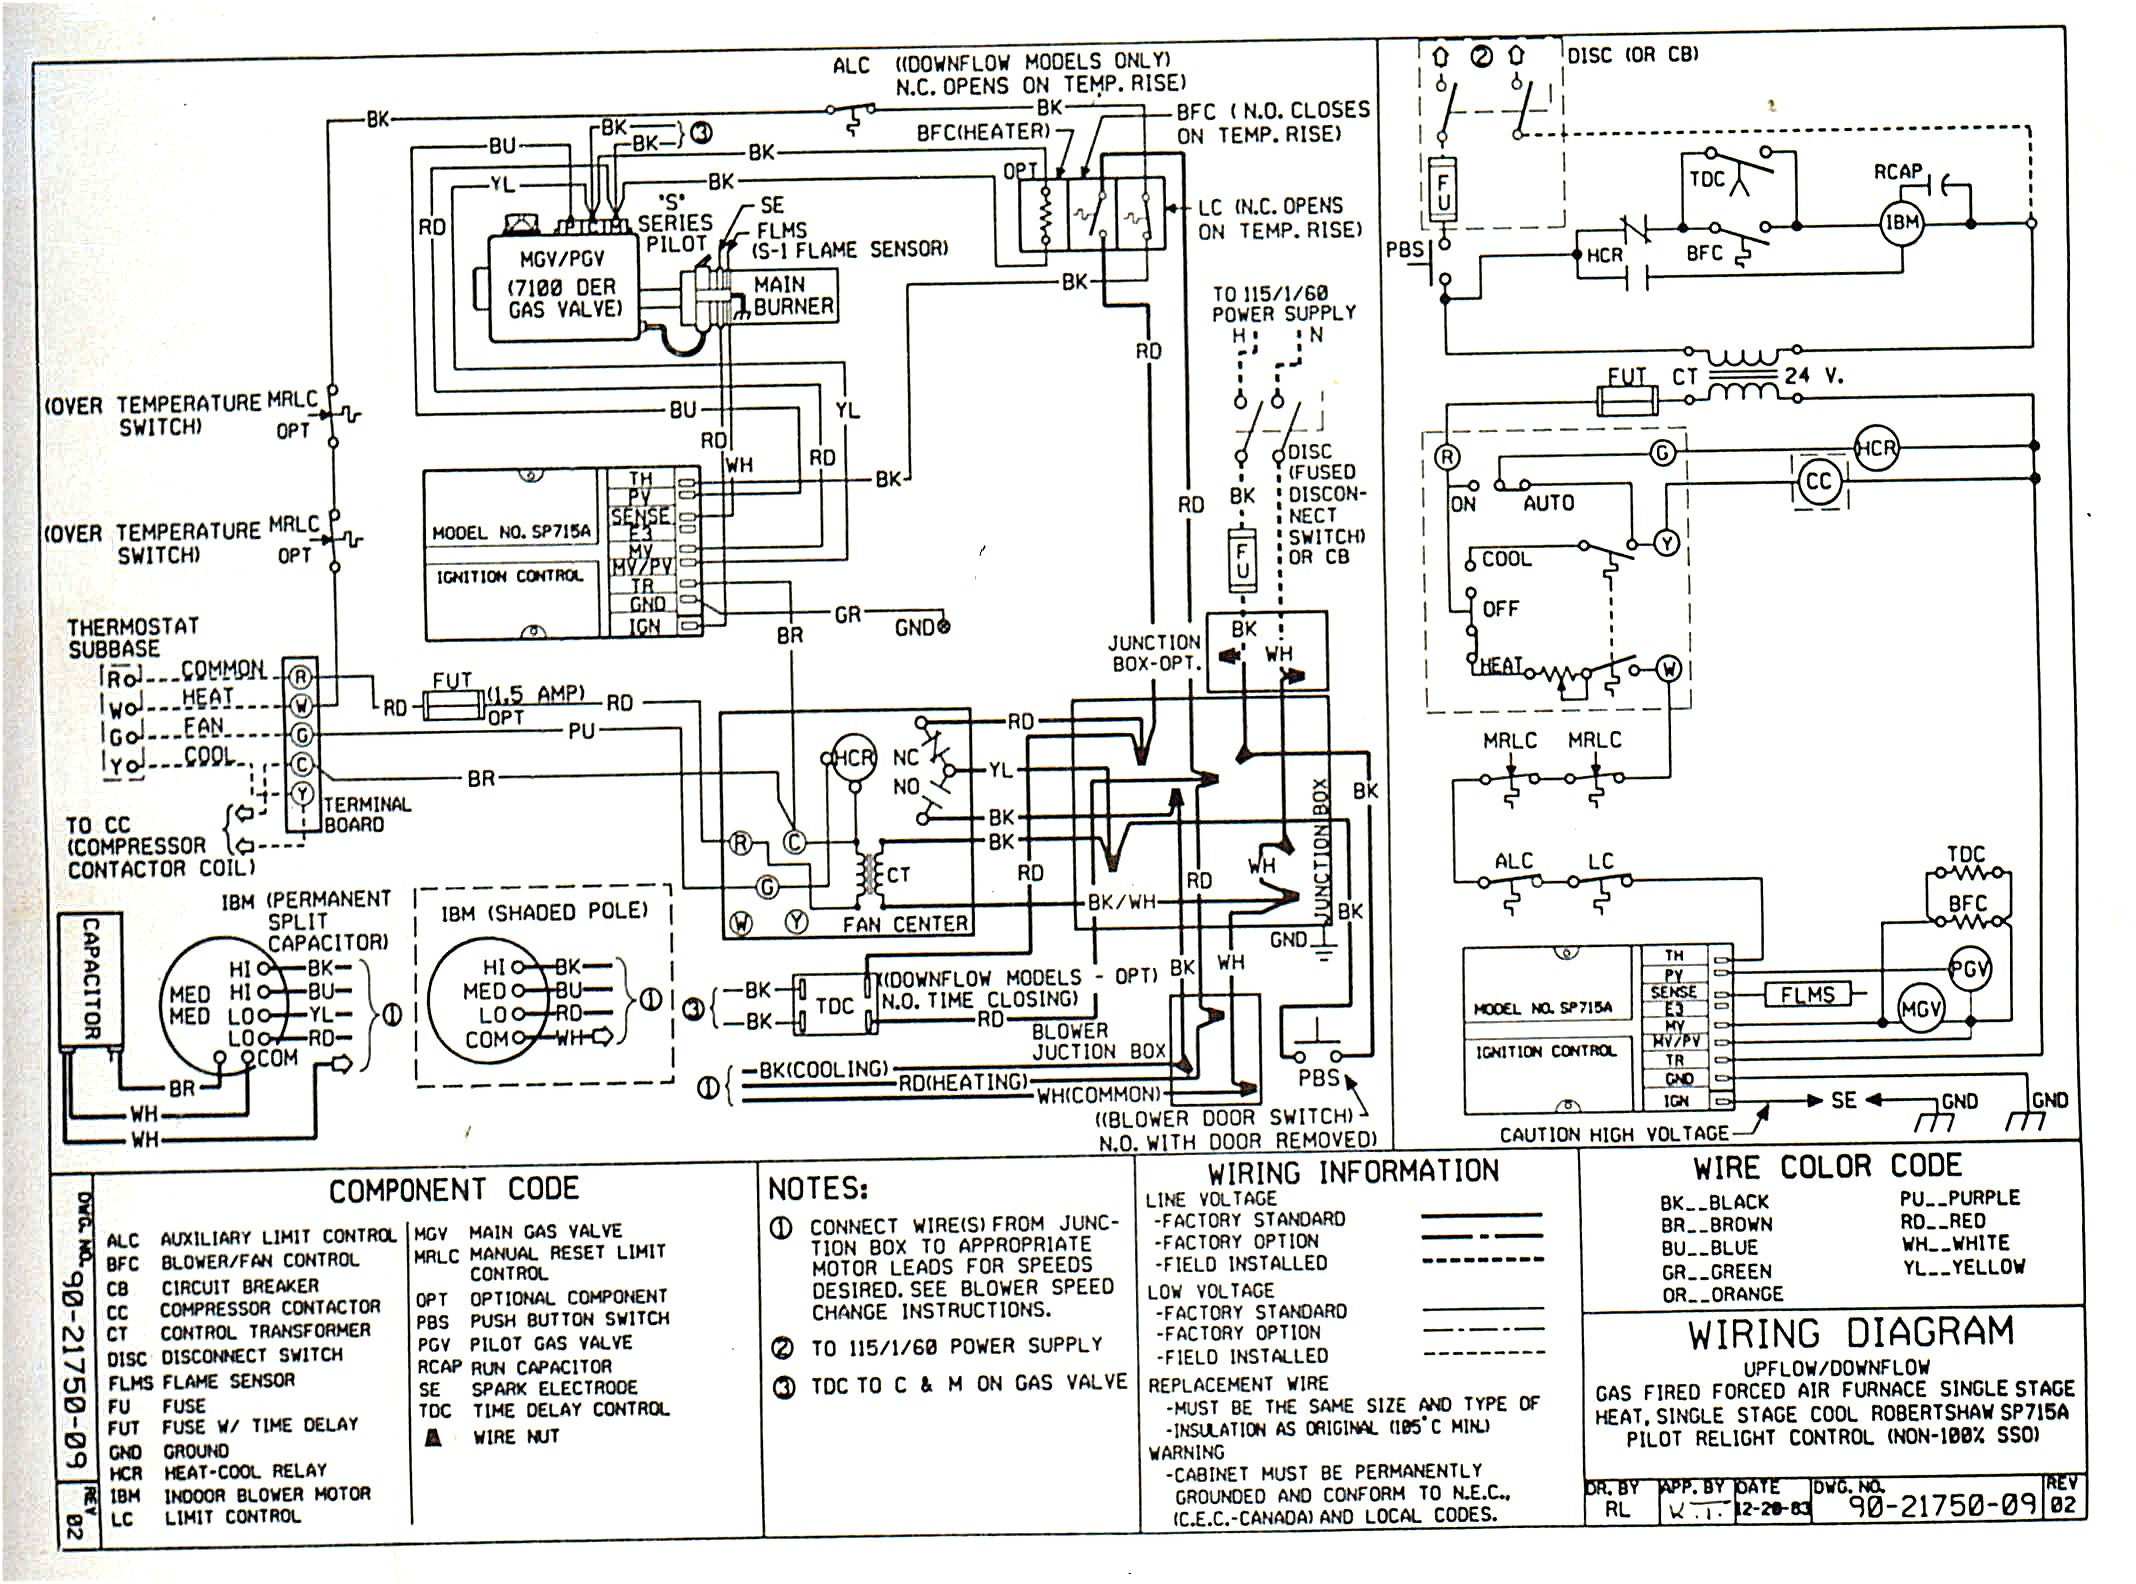 zw_8240] old lennox thermostat wiring diagram old circuit diagrams  schematic wiring  denli phot ostr apom ospor capem numap anal cajos mohammedshrine librar  wiring 101